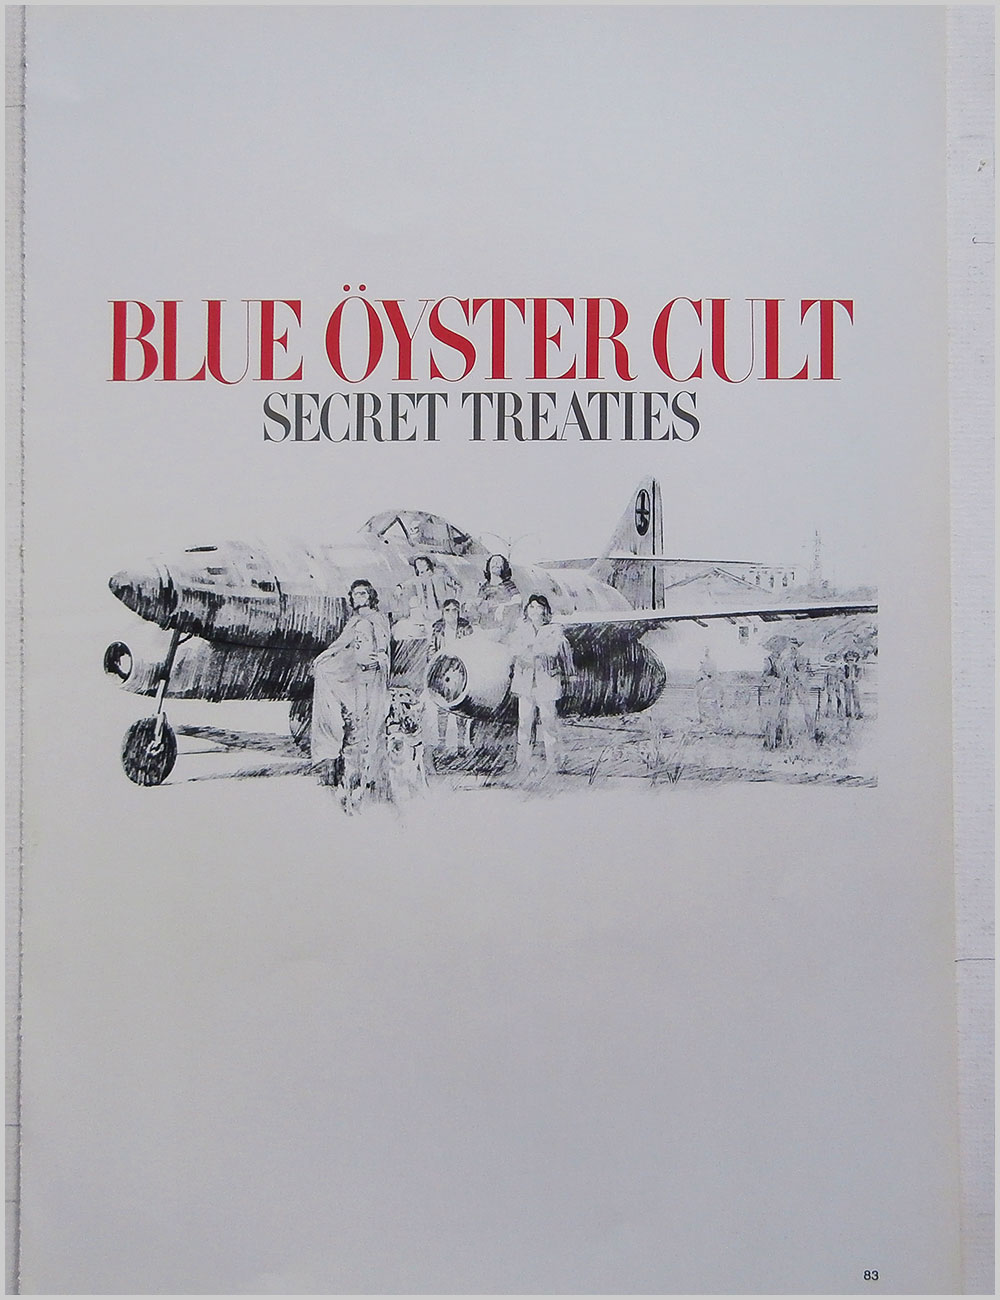 Blue Oyster Cult and Trapeze - Rock Poster: Blue Oyster Cult: Secret Treaties b/w Trapeze: Hot Wire (PB100317)